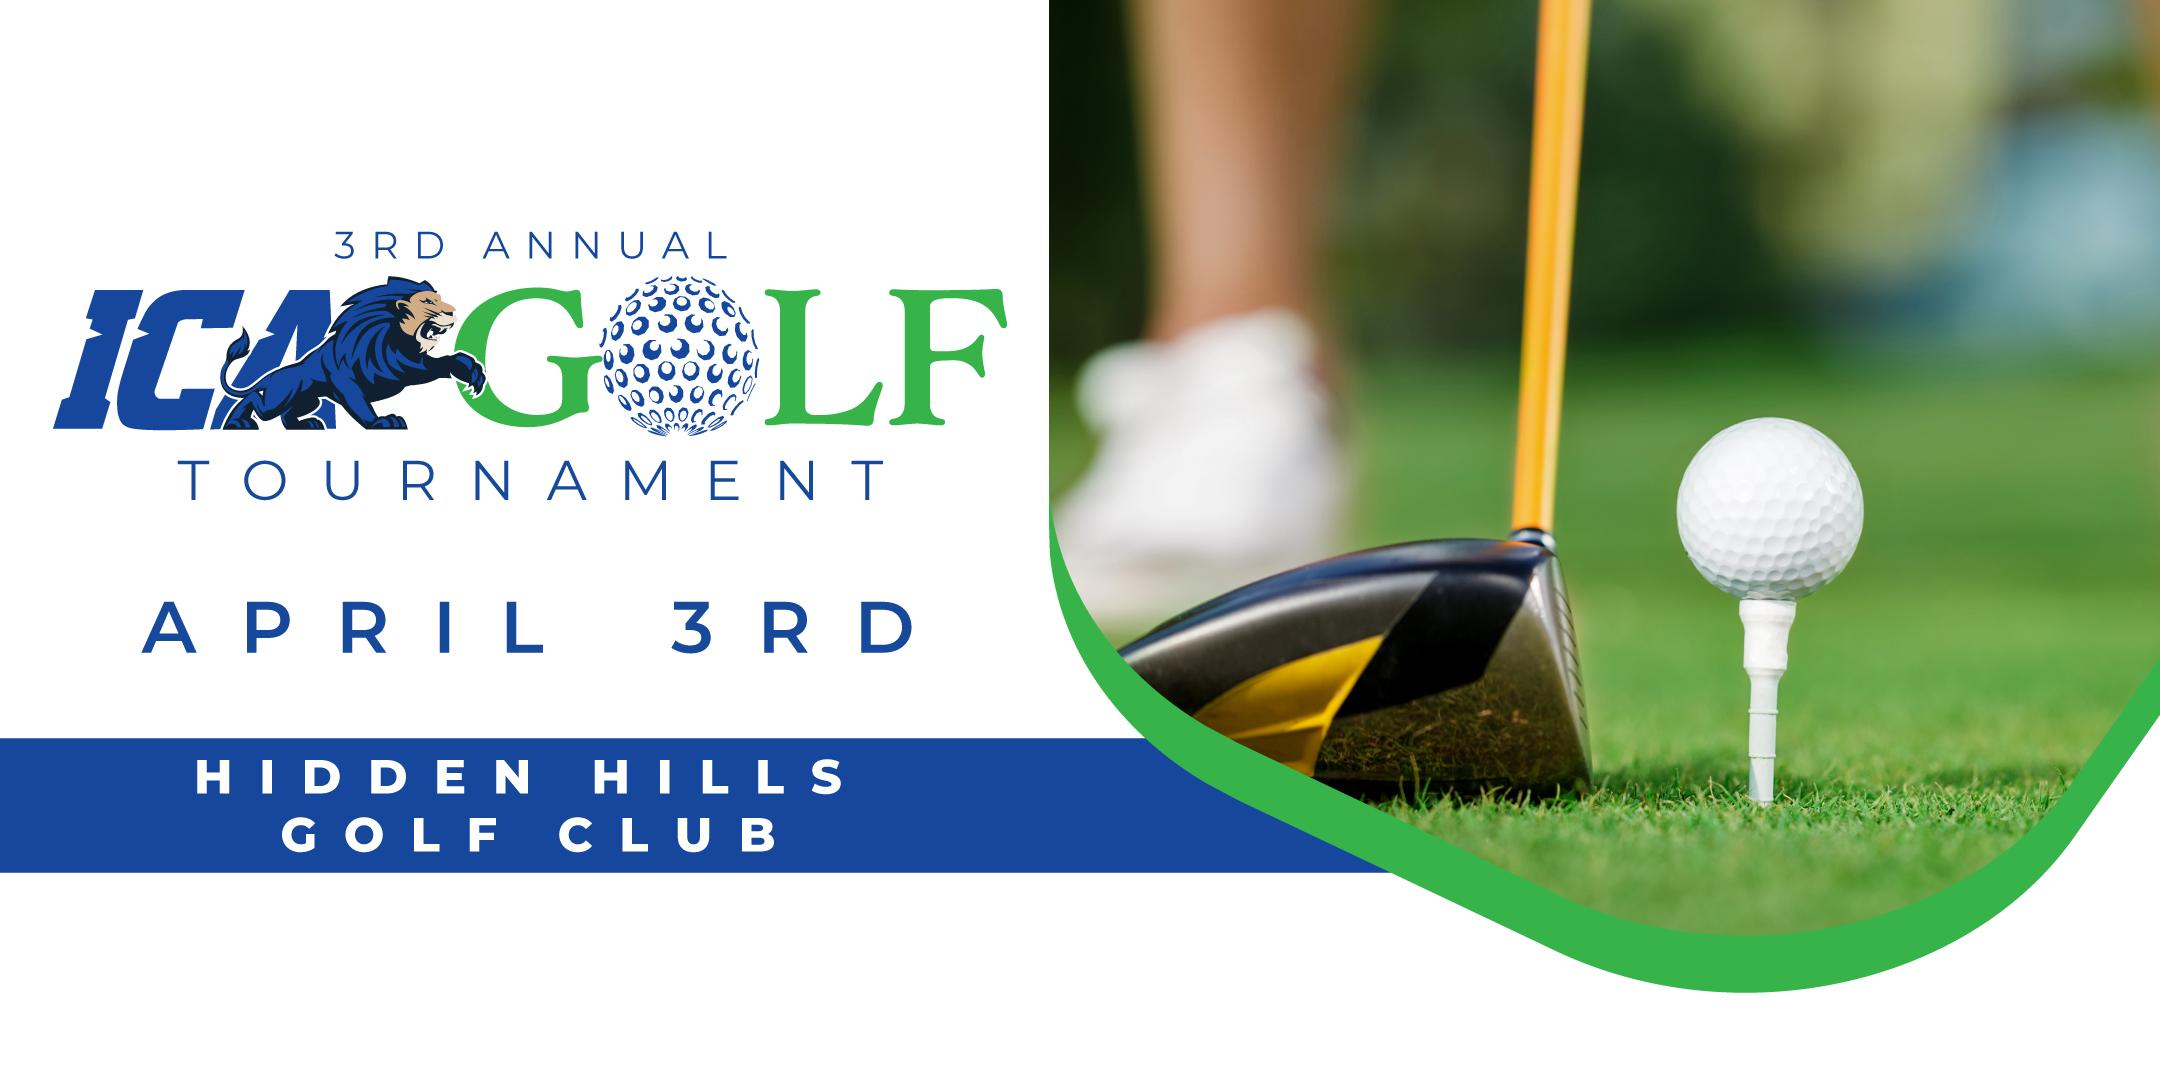 3rd Annual ICA Golf Tournament